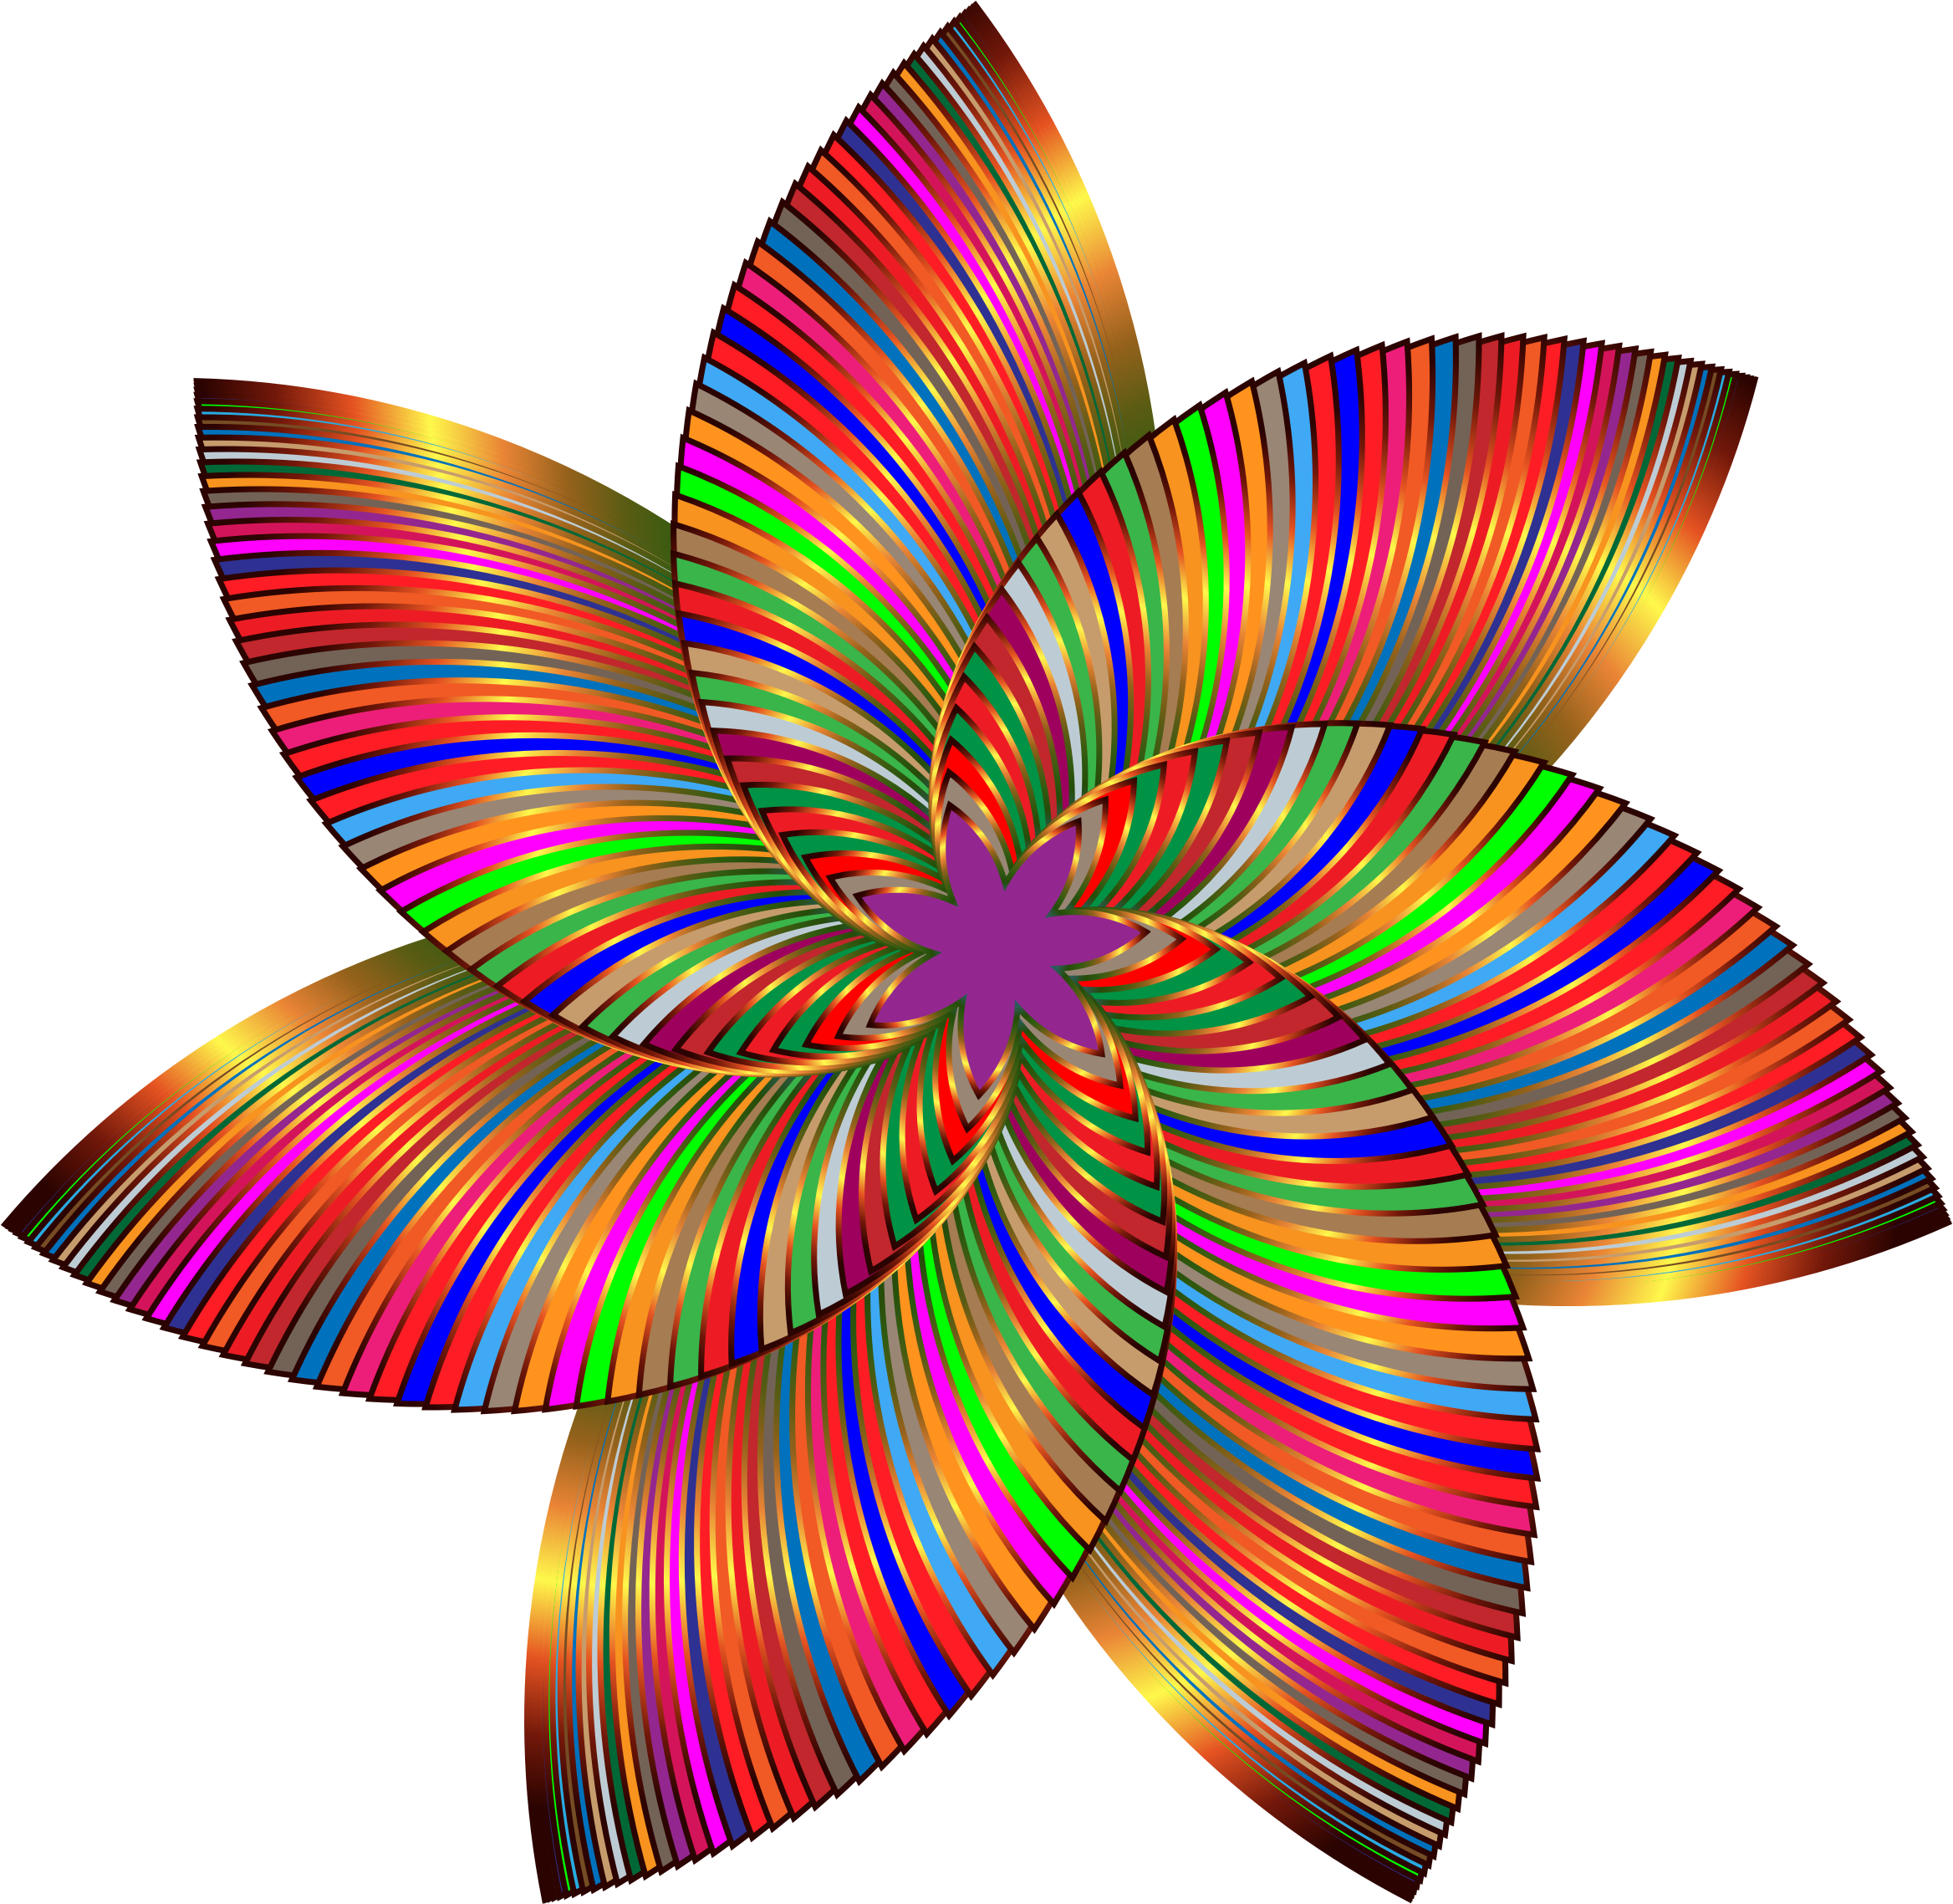 Colorful flower clipart 20 free Cliparts | Download images ... Colorful Flowers Clipart